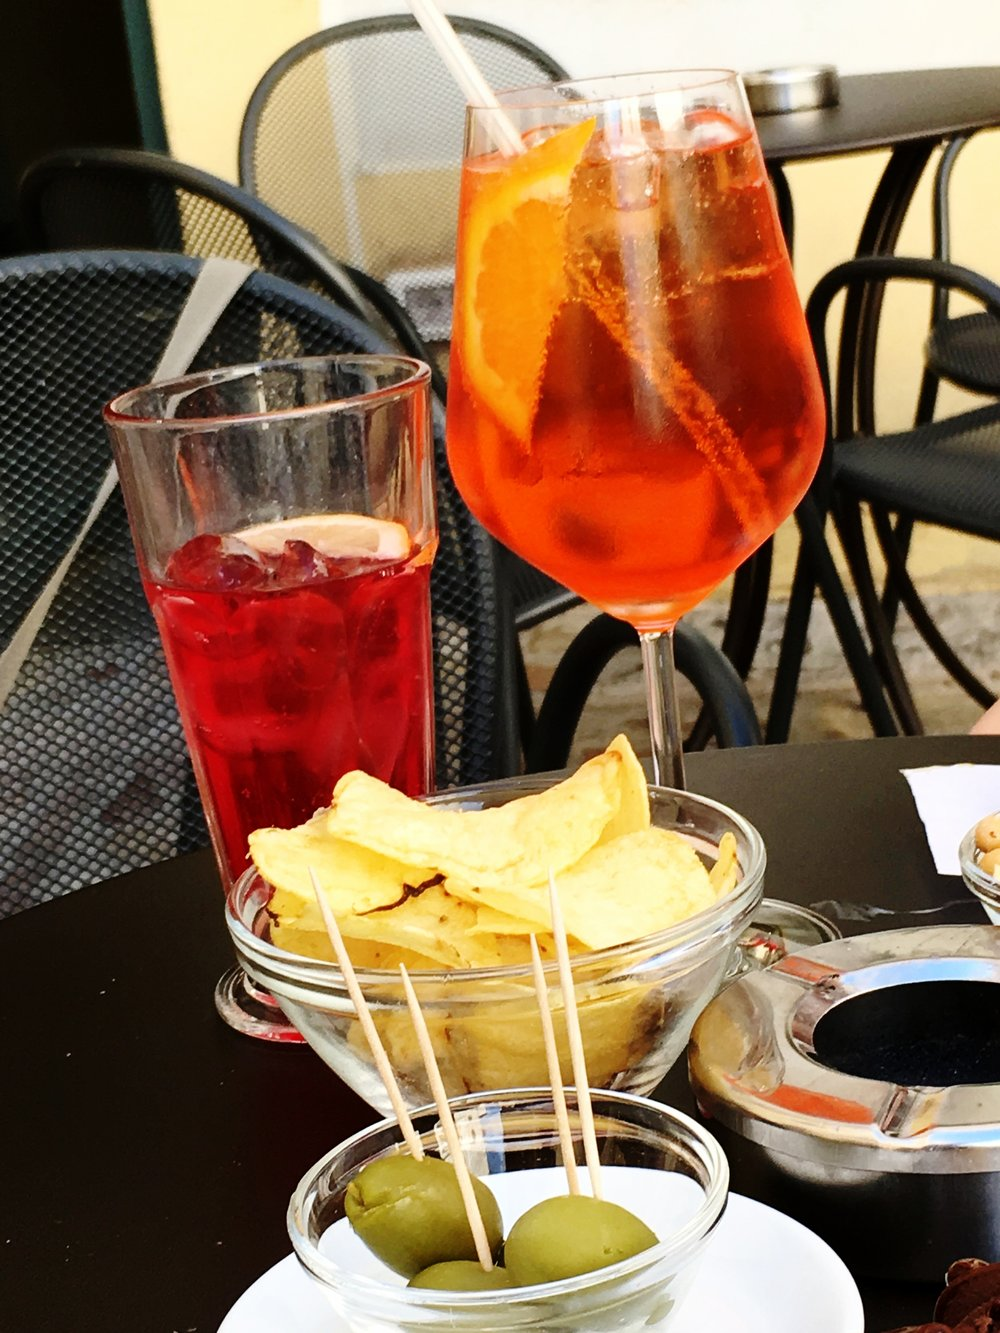 Aperol Spritz  - Pour prosecco and Aperol (3 to 1 proportions) into a glass of ice. Stir, add a splash of soda water if desired.Drop in a thin slice of orange.